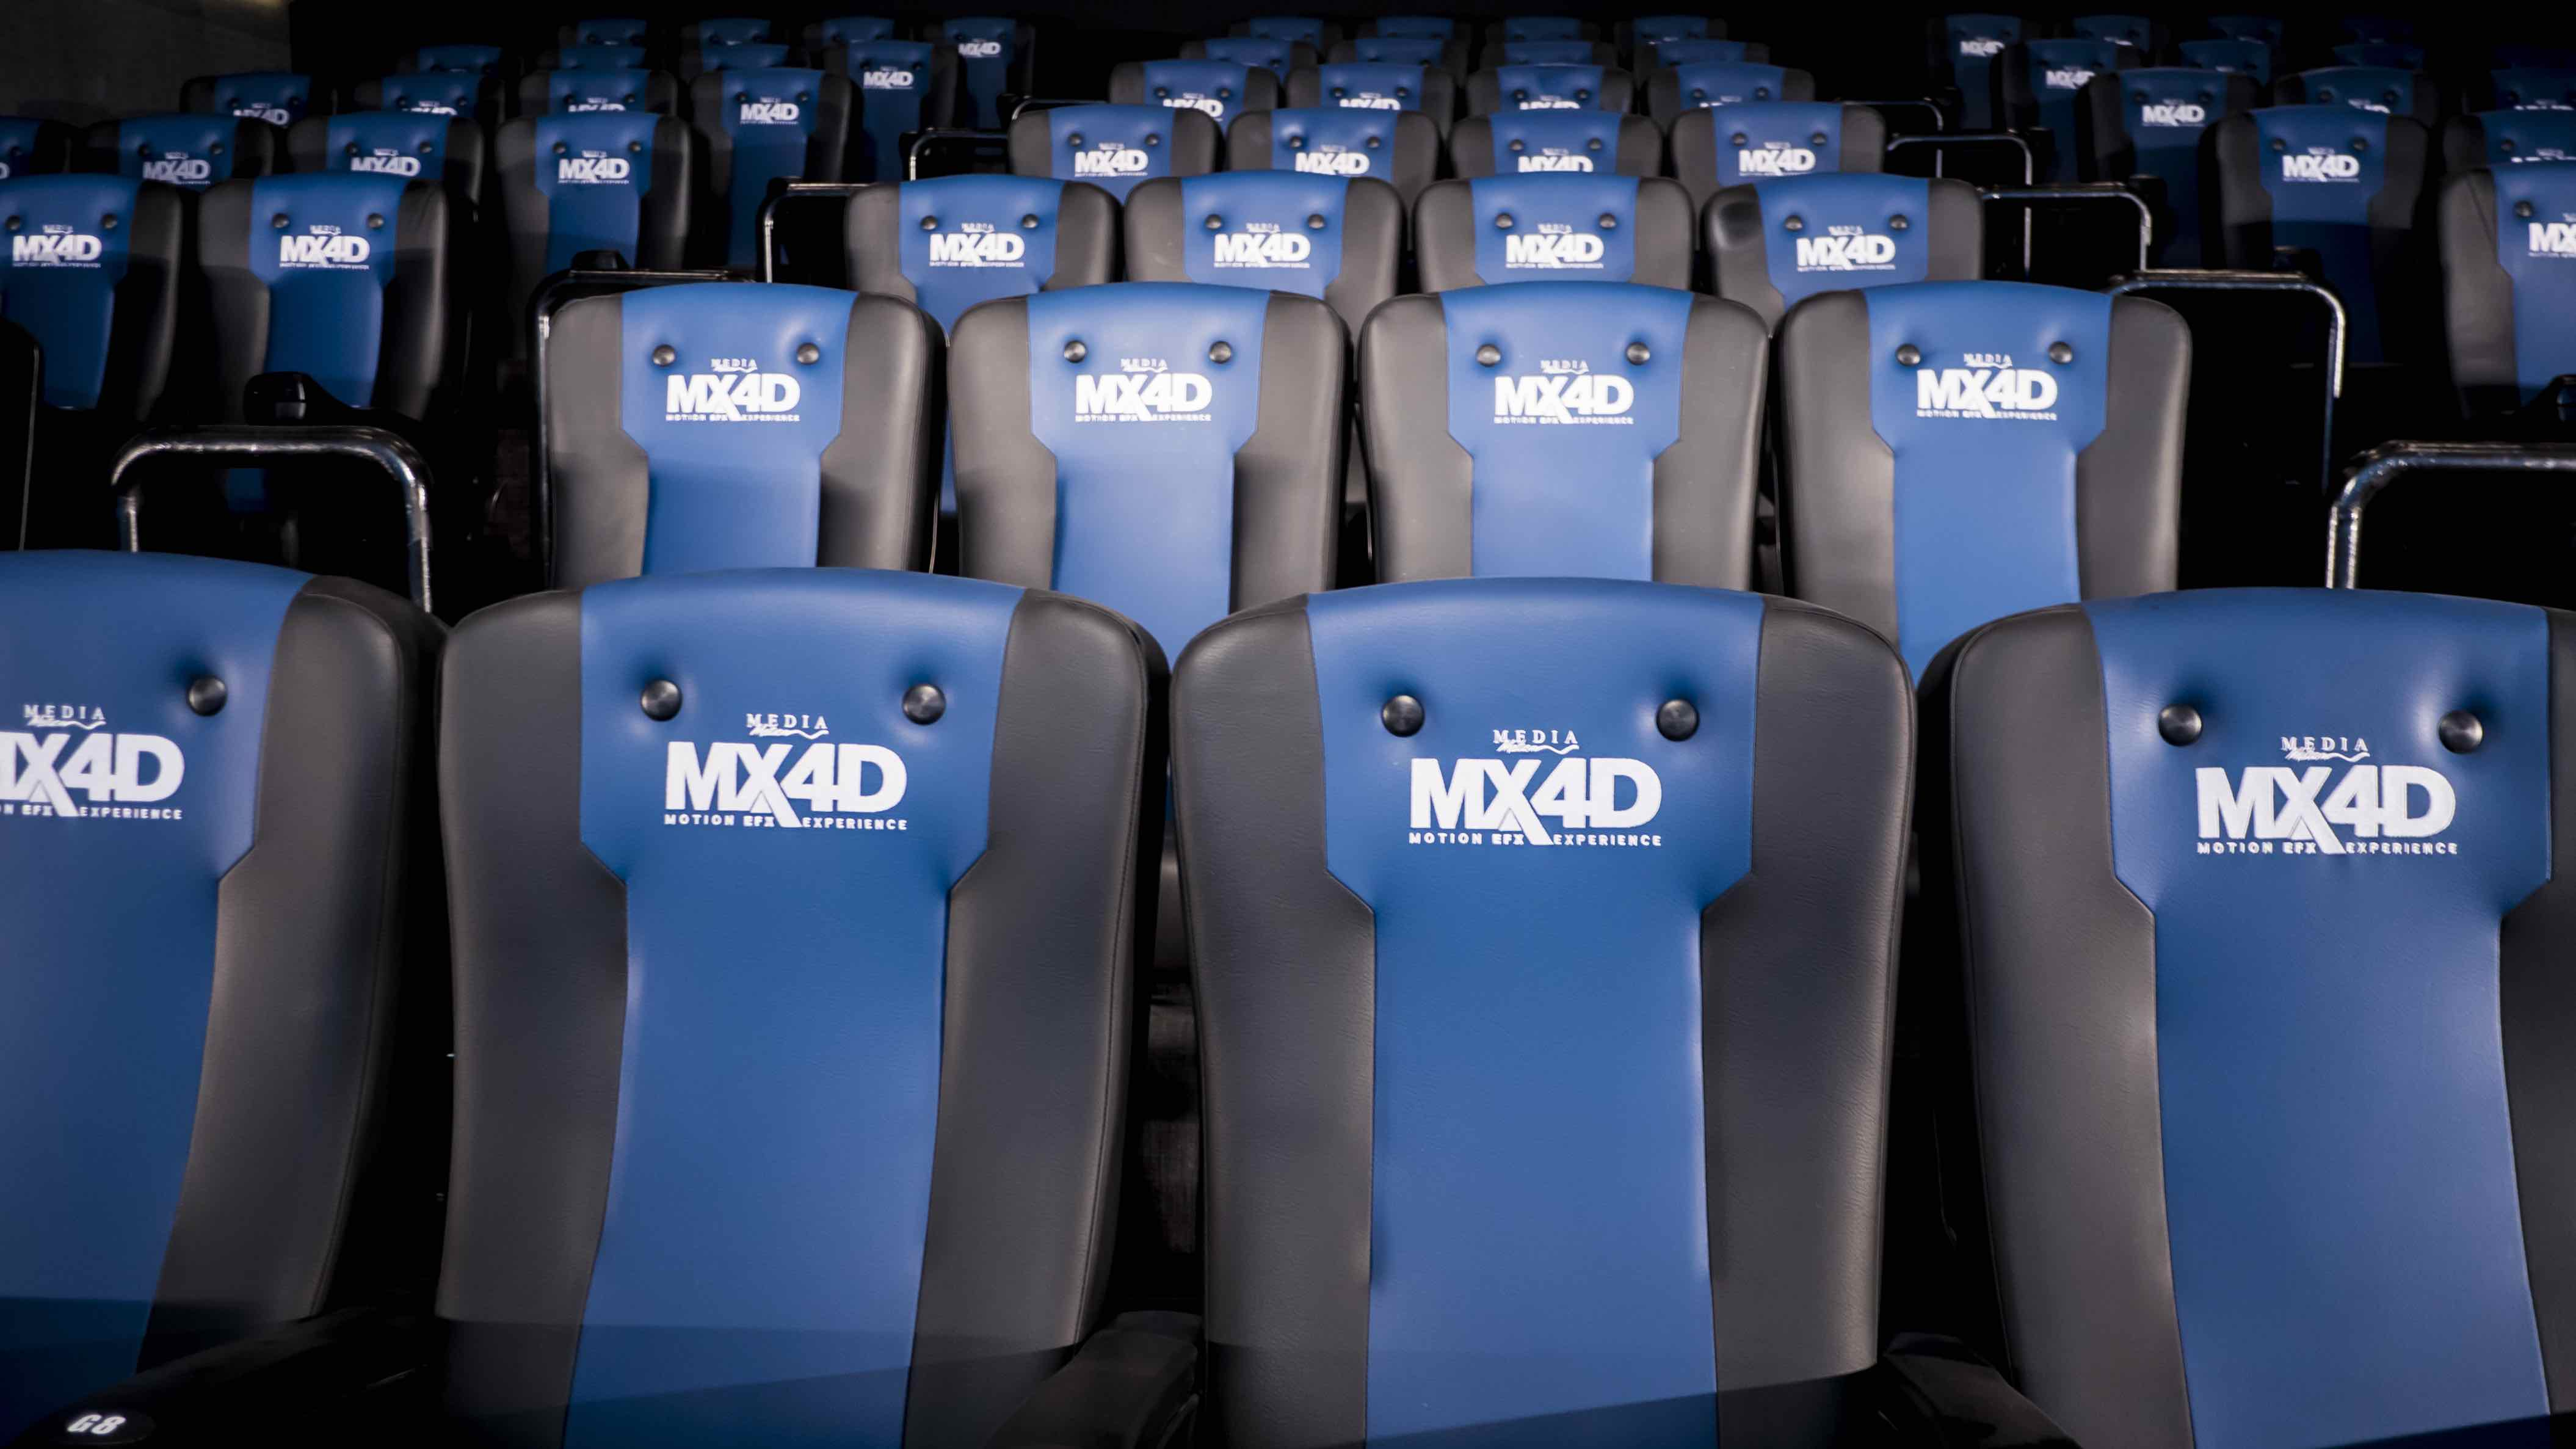 Image from MBO Cinemas